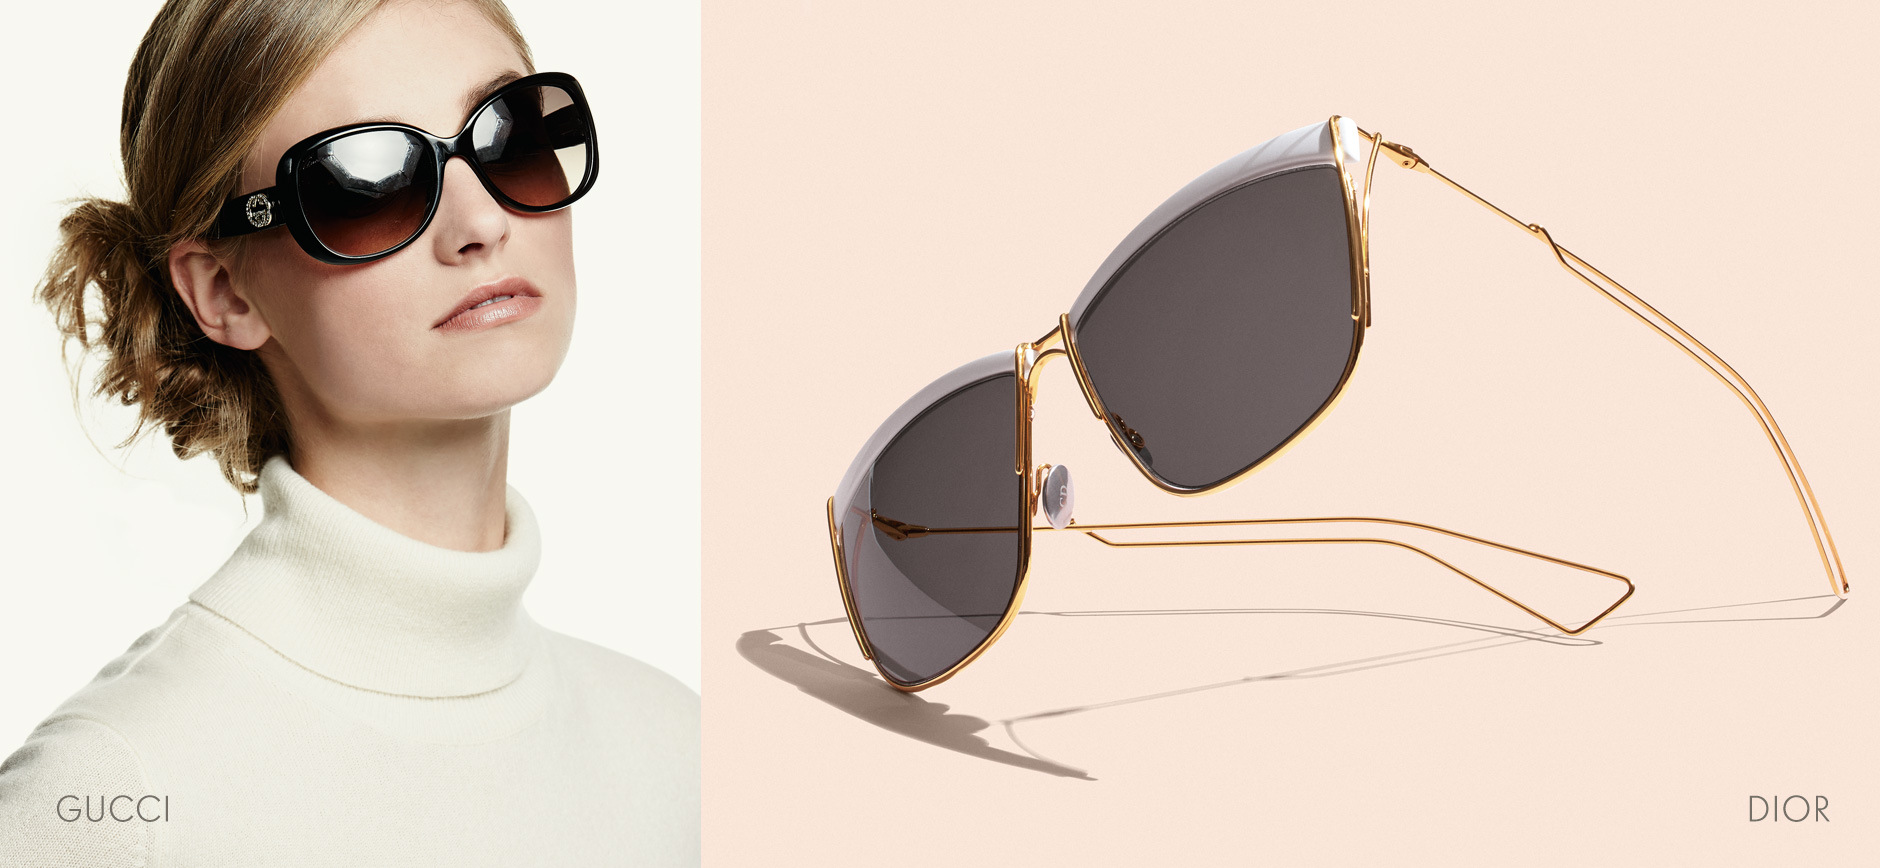 Sunglasses Lookbook